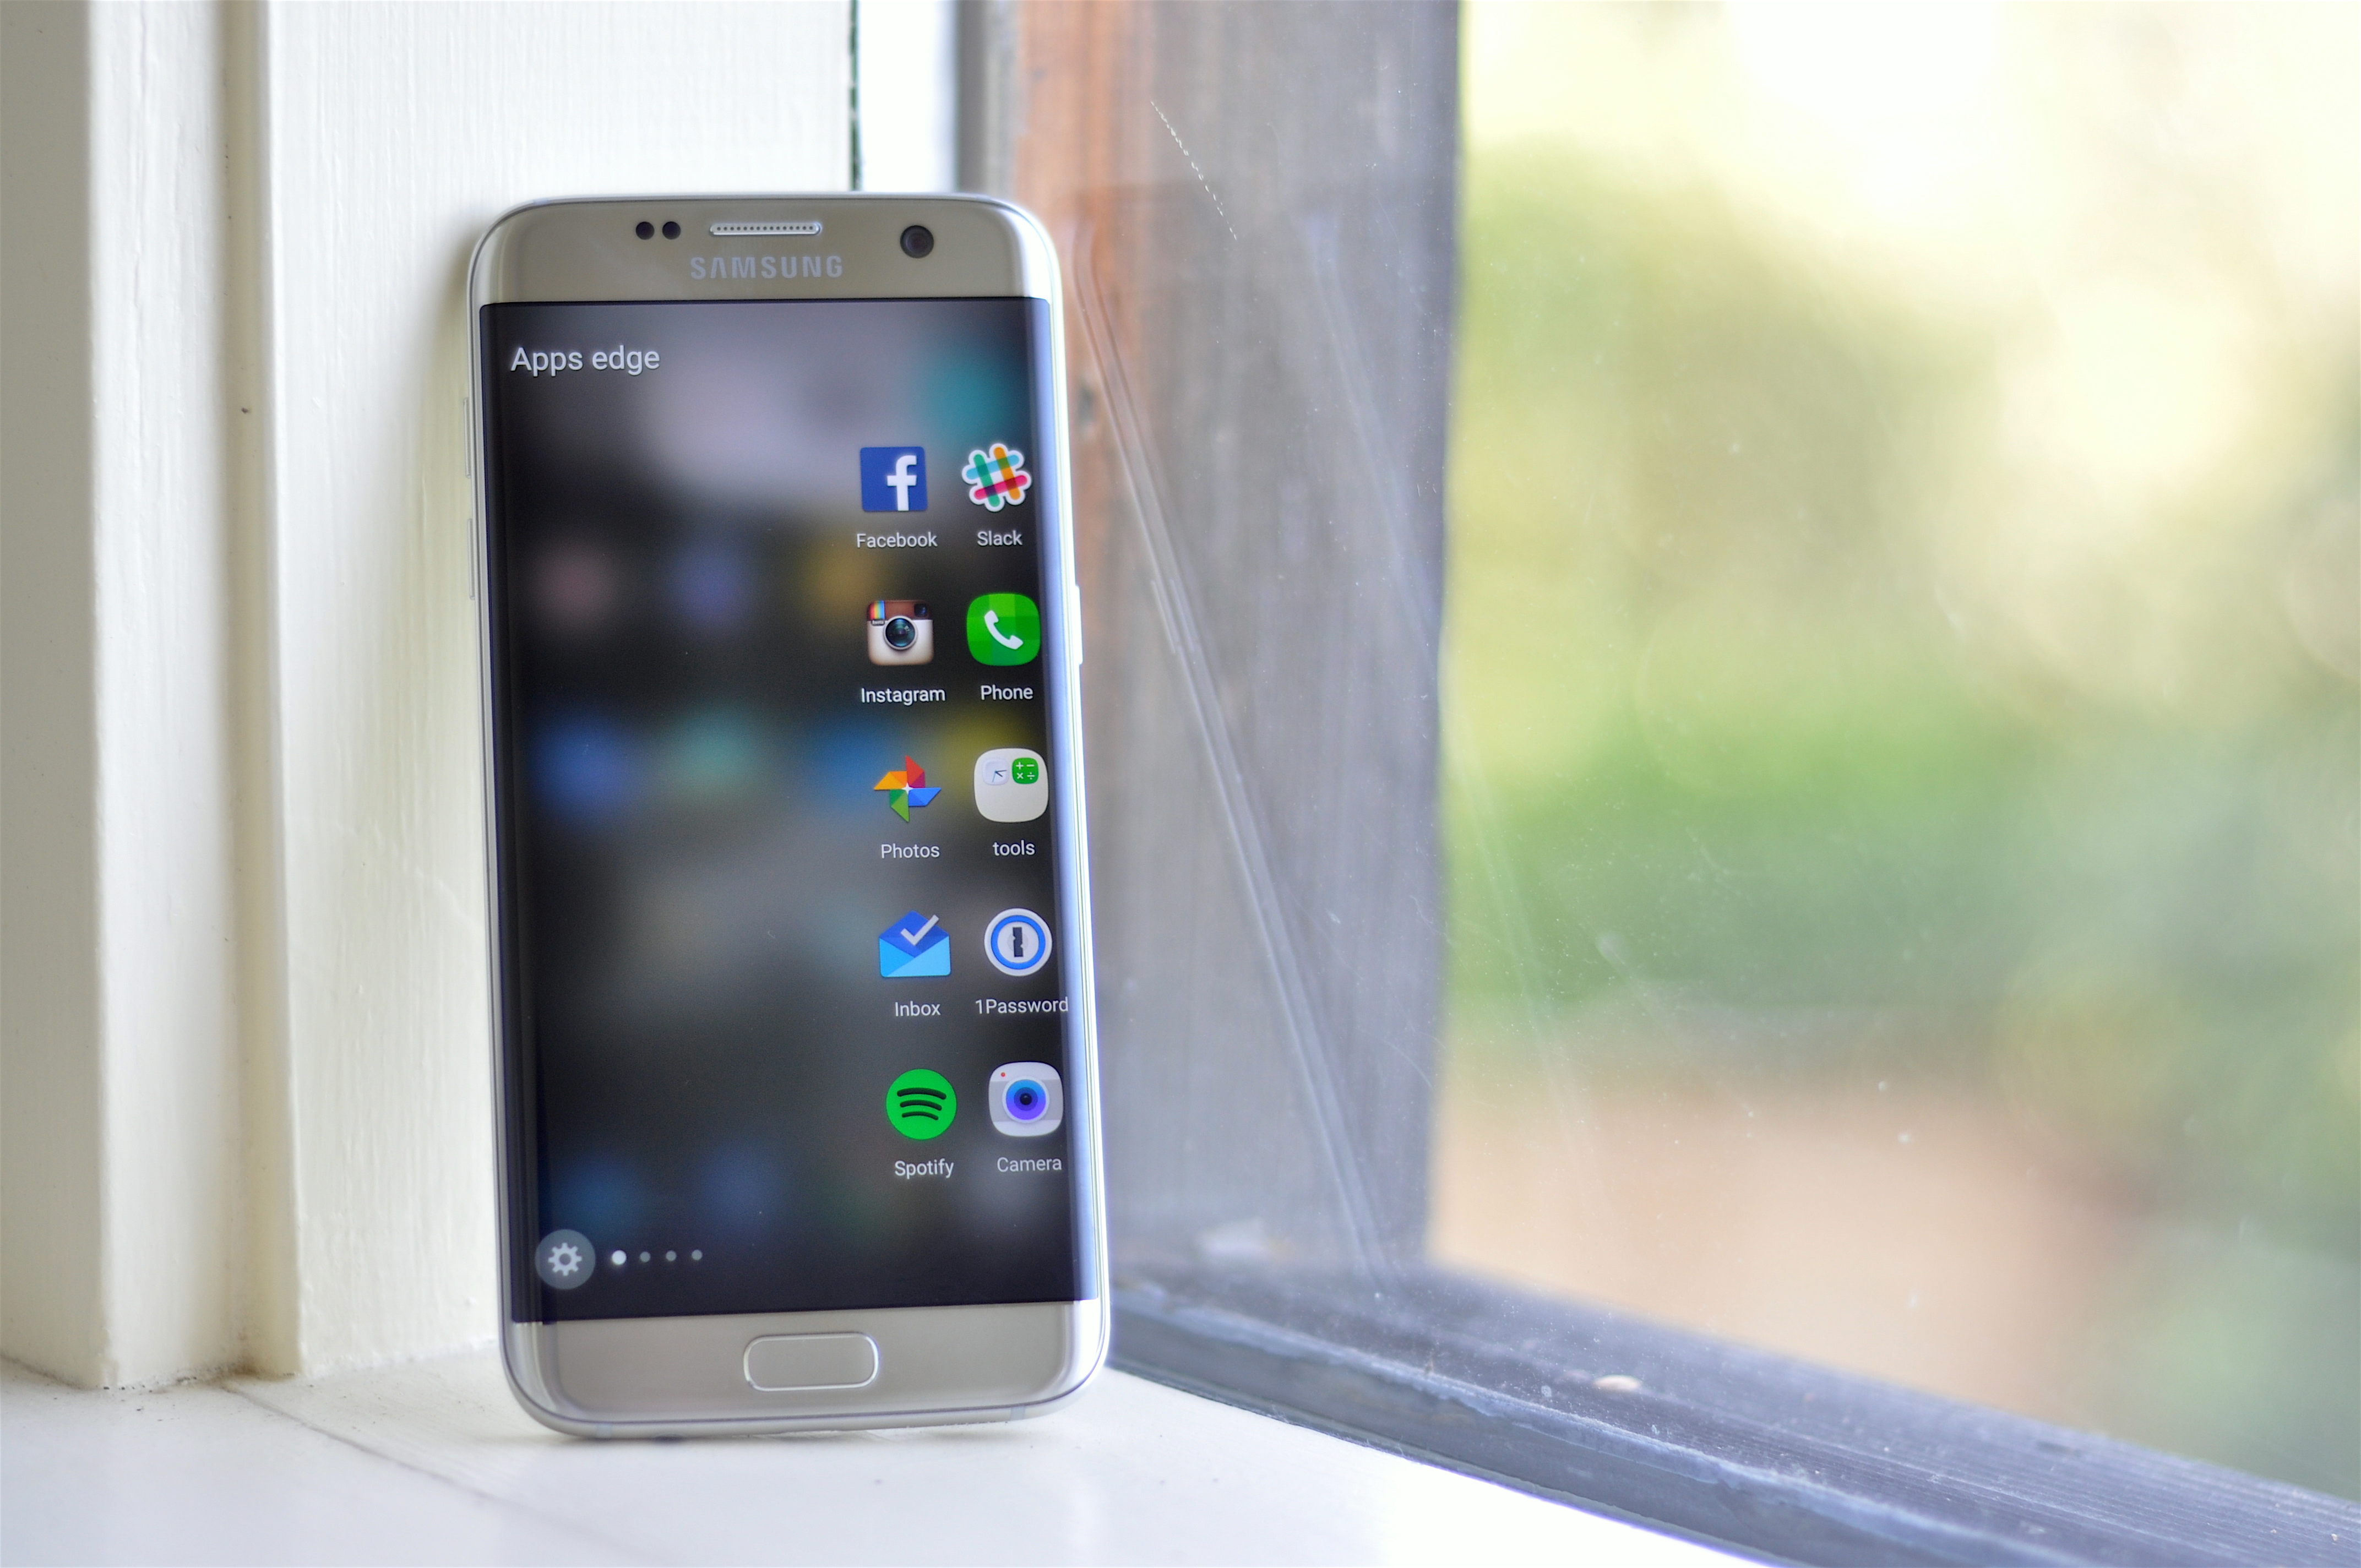 People are selling samsung galaxy s6 clones - Samsung Galaxy S7 Edge